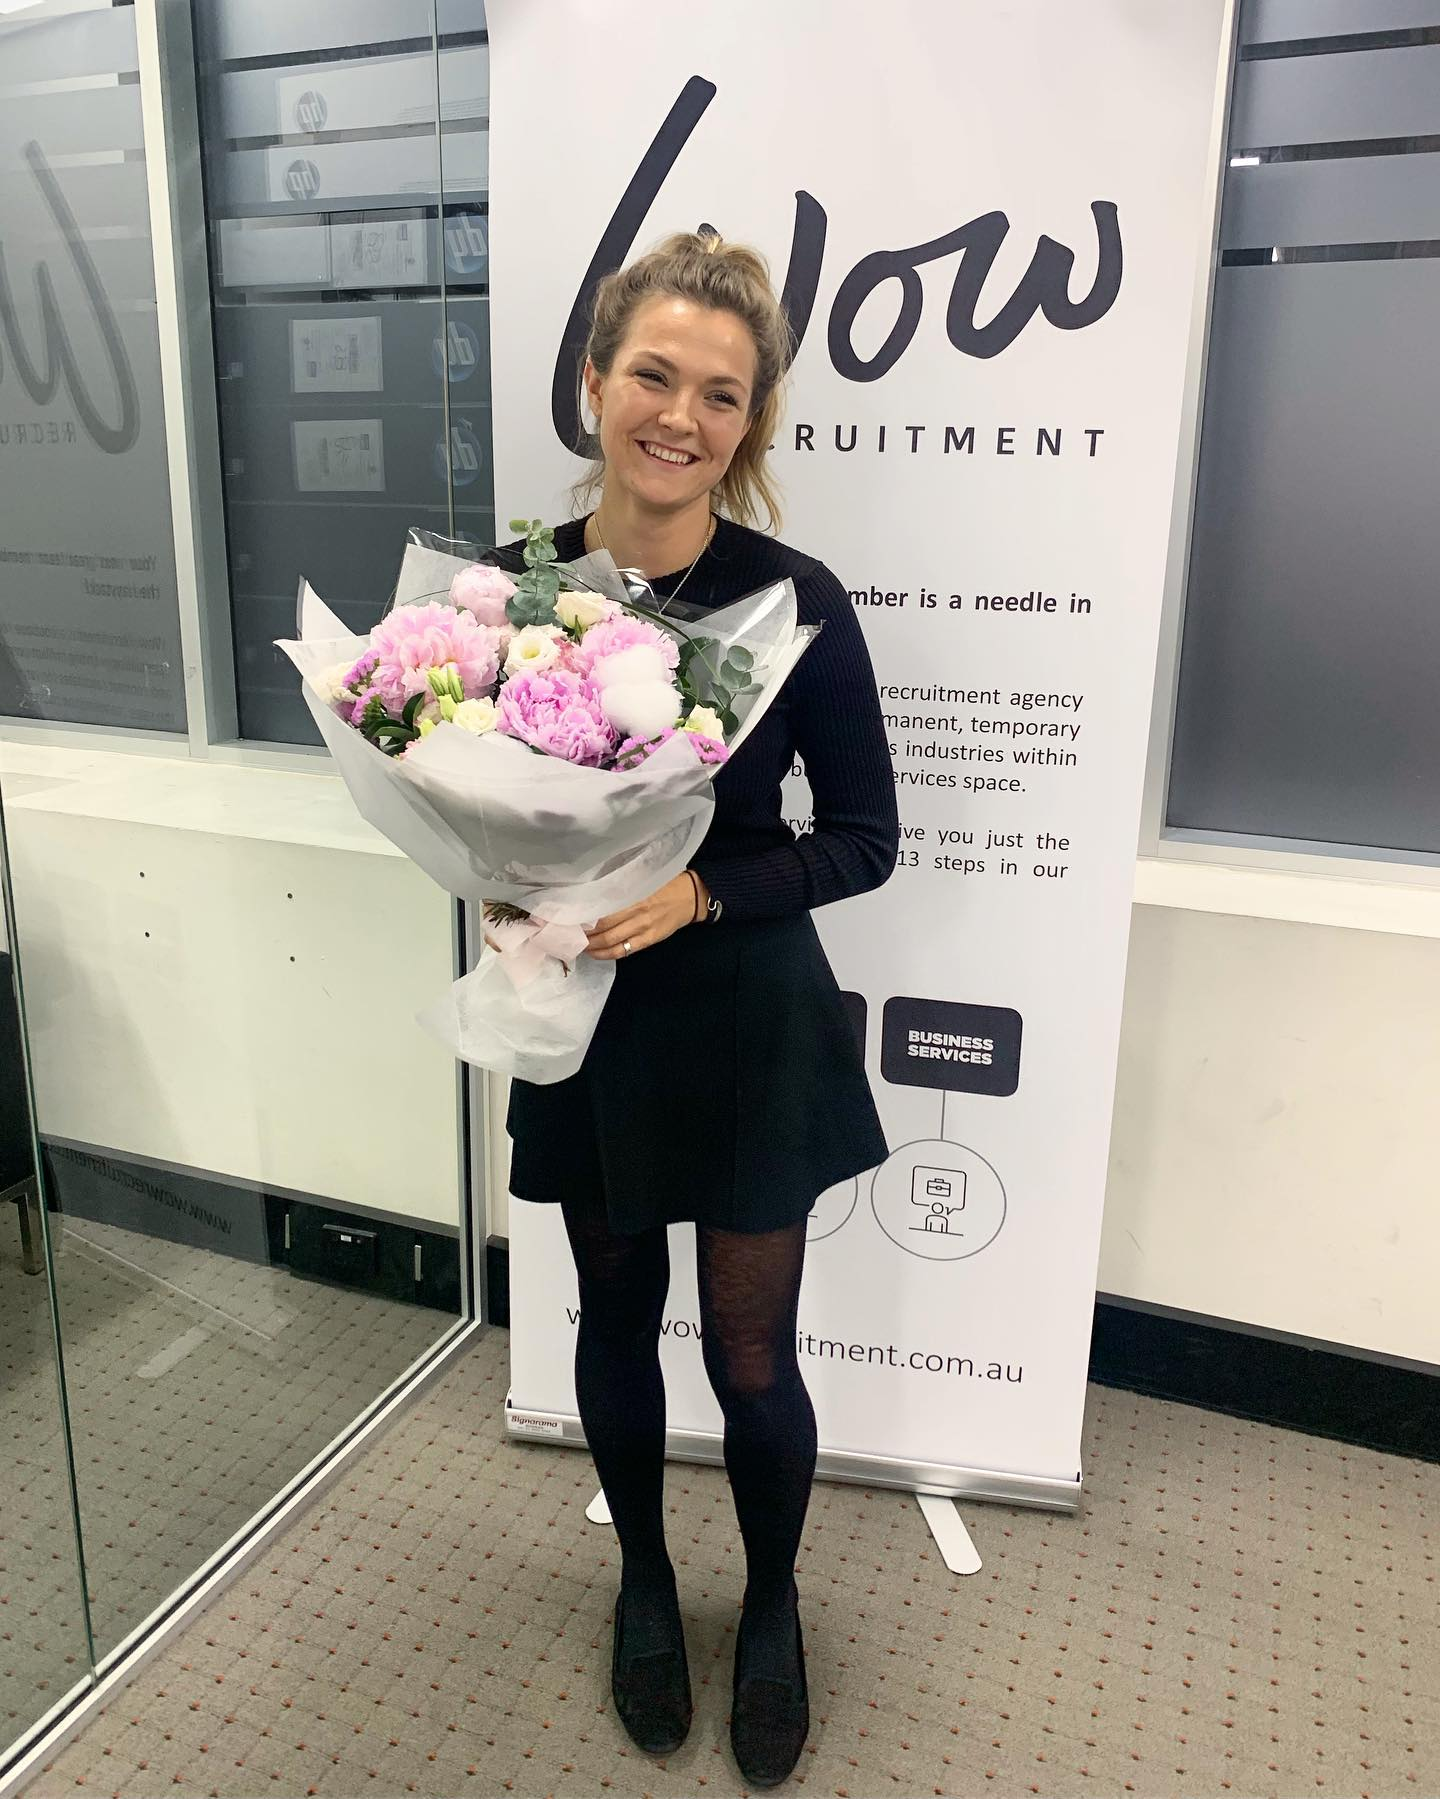 Congratulations to Holly on her first placement  Well done! We're so happy to have you on the team!